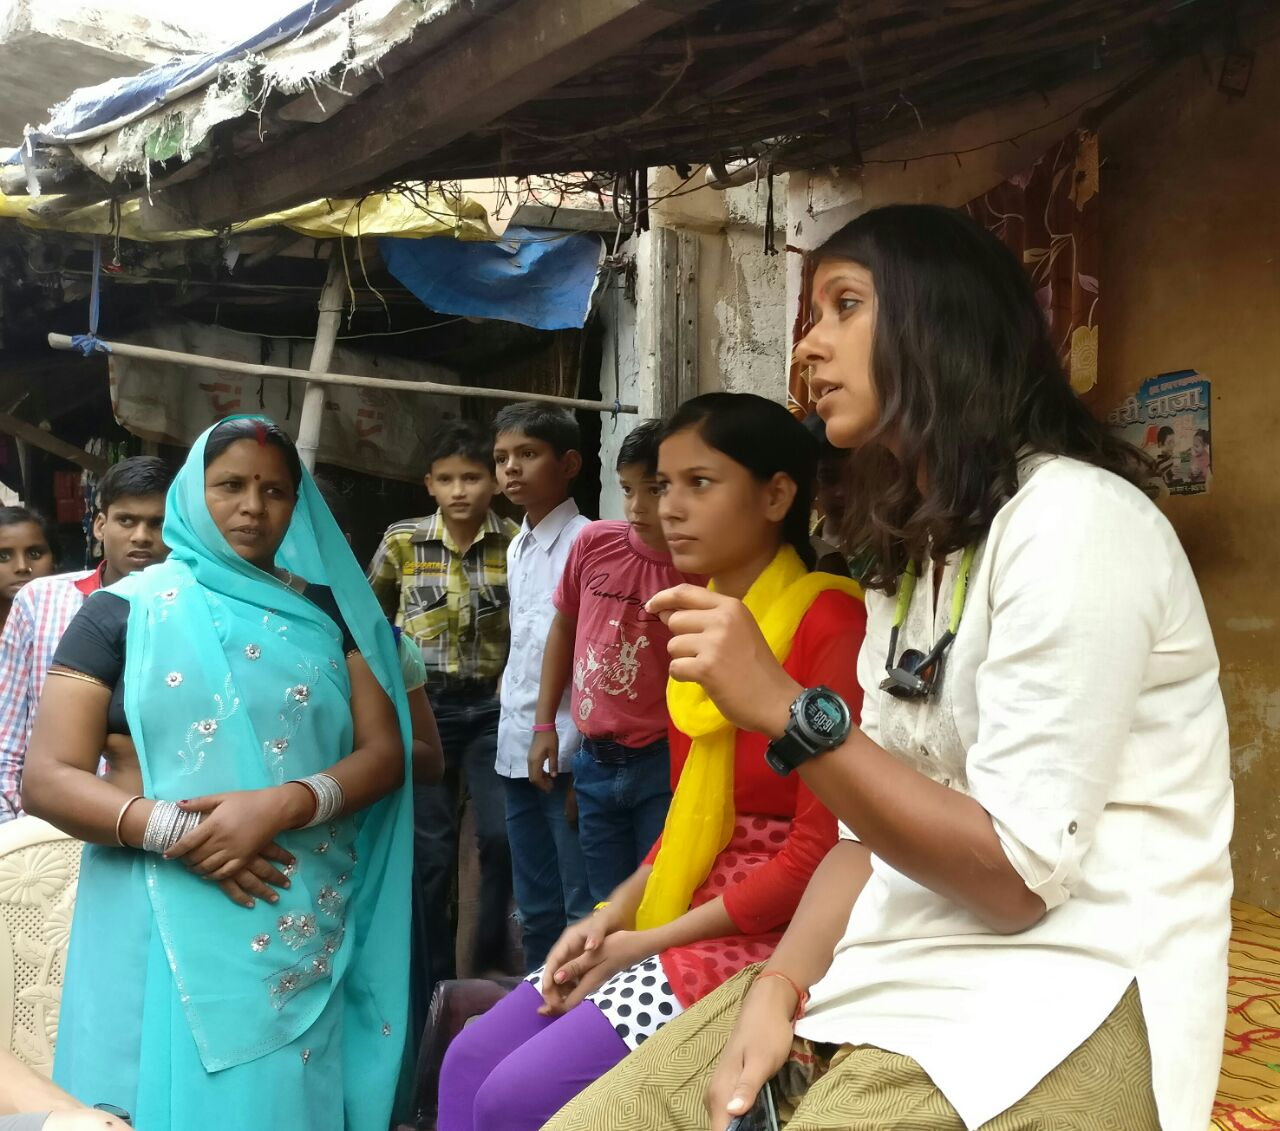 Shilpika speaks with a group of women about sanitation at WaterAid's project site in Kanpur. Photo © GangesSup